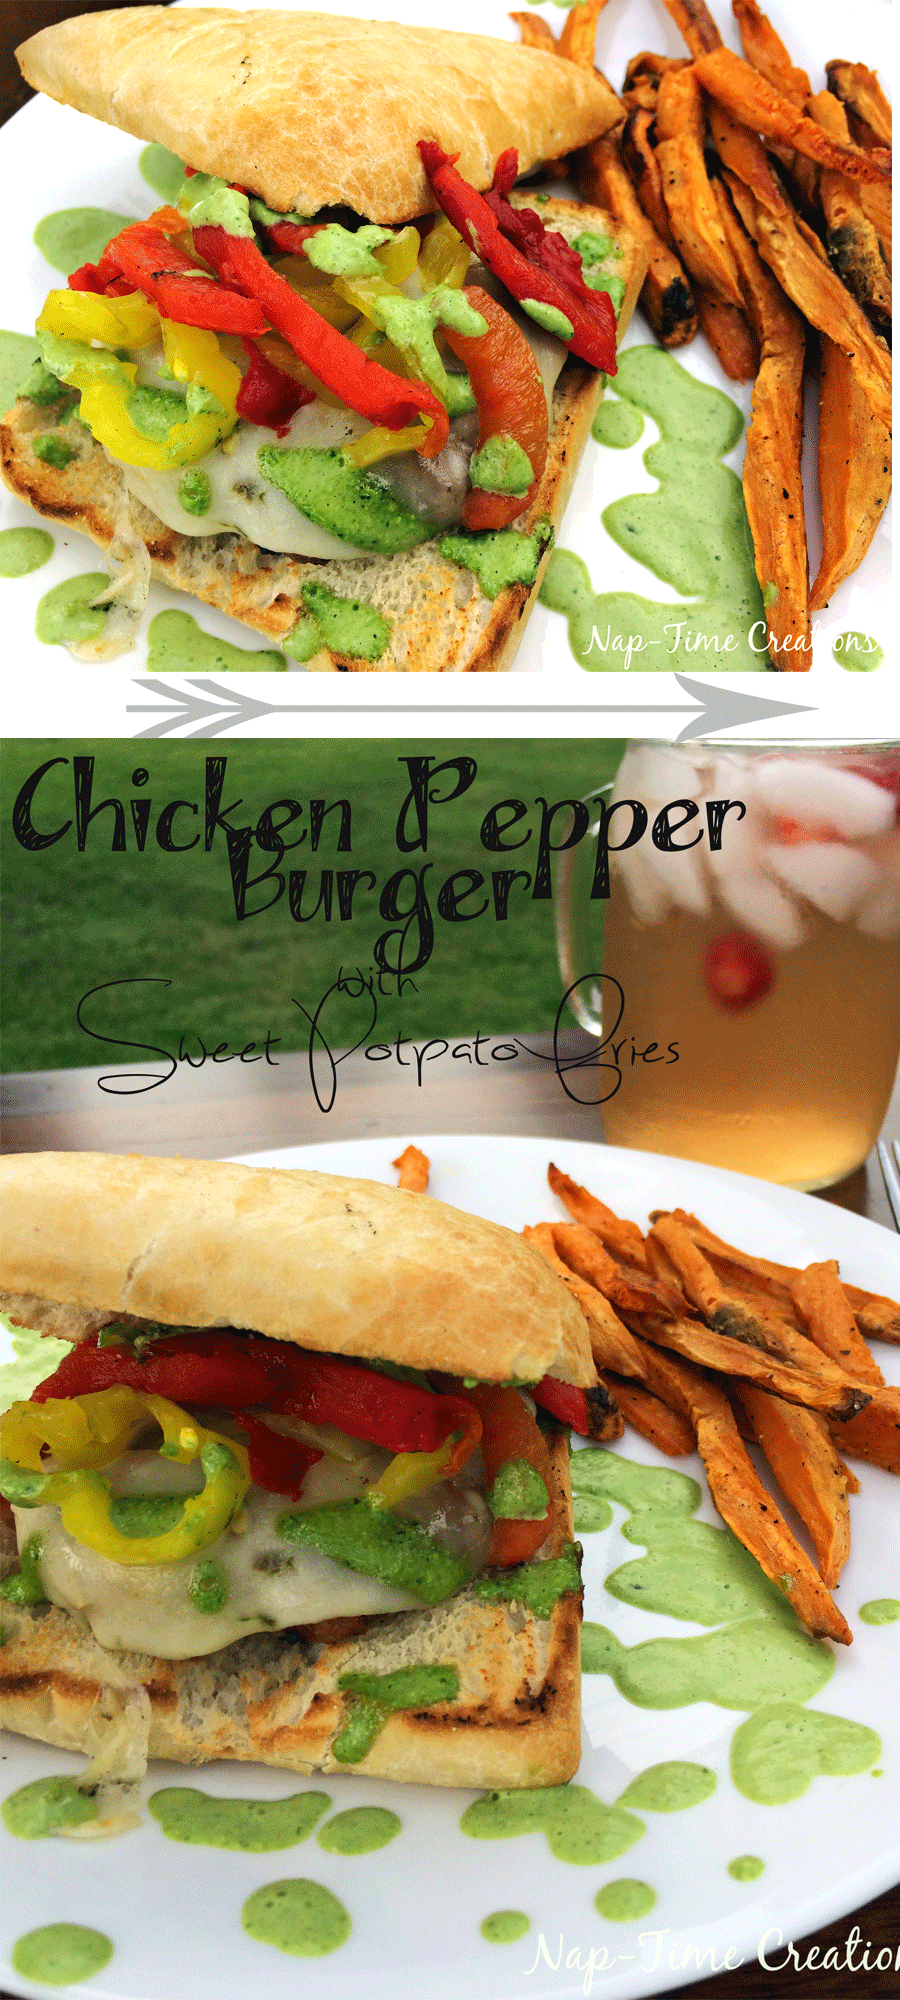 pepper-chicken-burger-with-sweet-potato-fries-from-Nap-Time-Creations